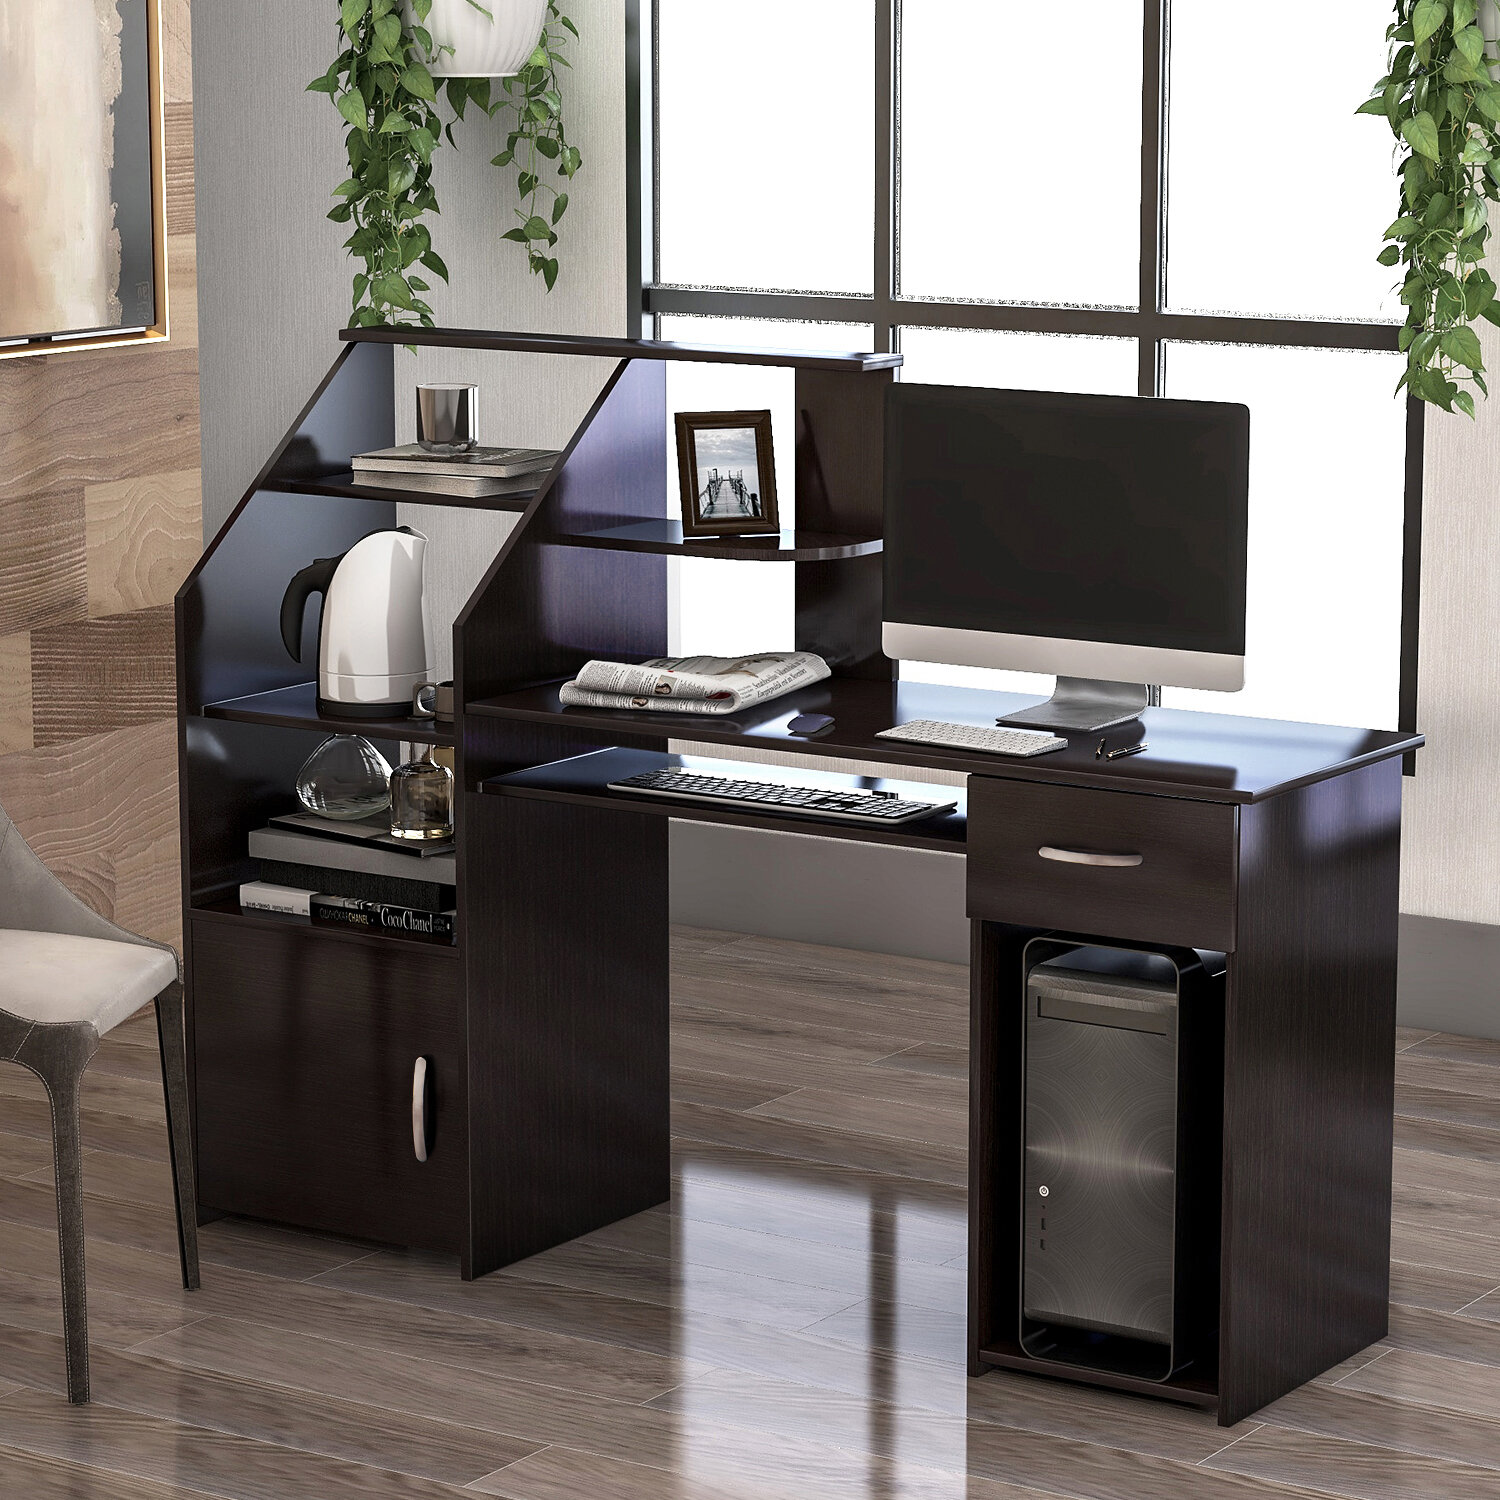 Image of: Foldable Writing Computer Desk 32 Small Lazy Modern Laptop Table 3 Steps Quickily Assembly Folding Desk For Home Office Use With Storage Organizer Shelf Home Office Desks Home Kitchen